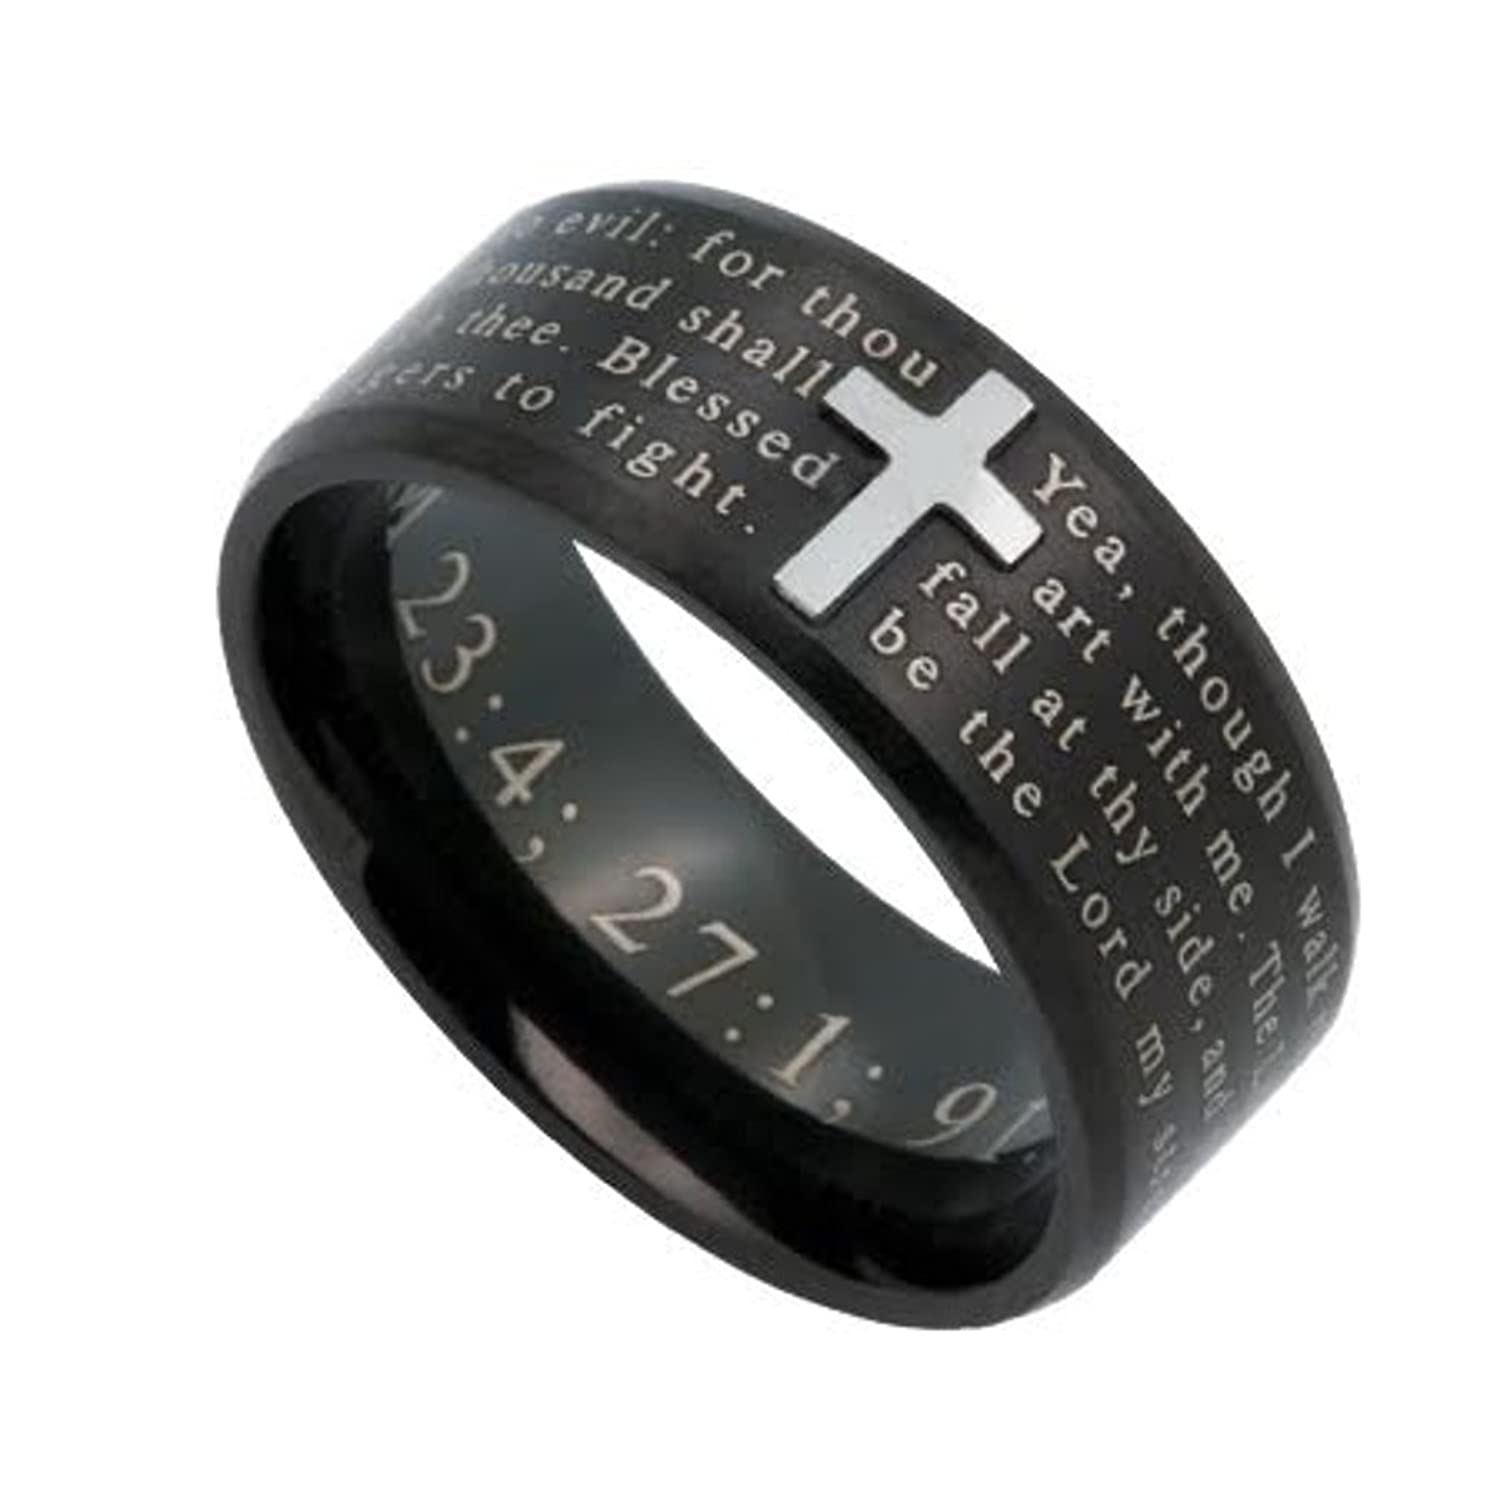 Amazon PSALM 23 4 Jewelry Cross Ring For Men Black Stainless